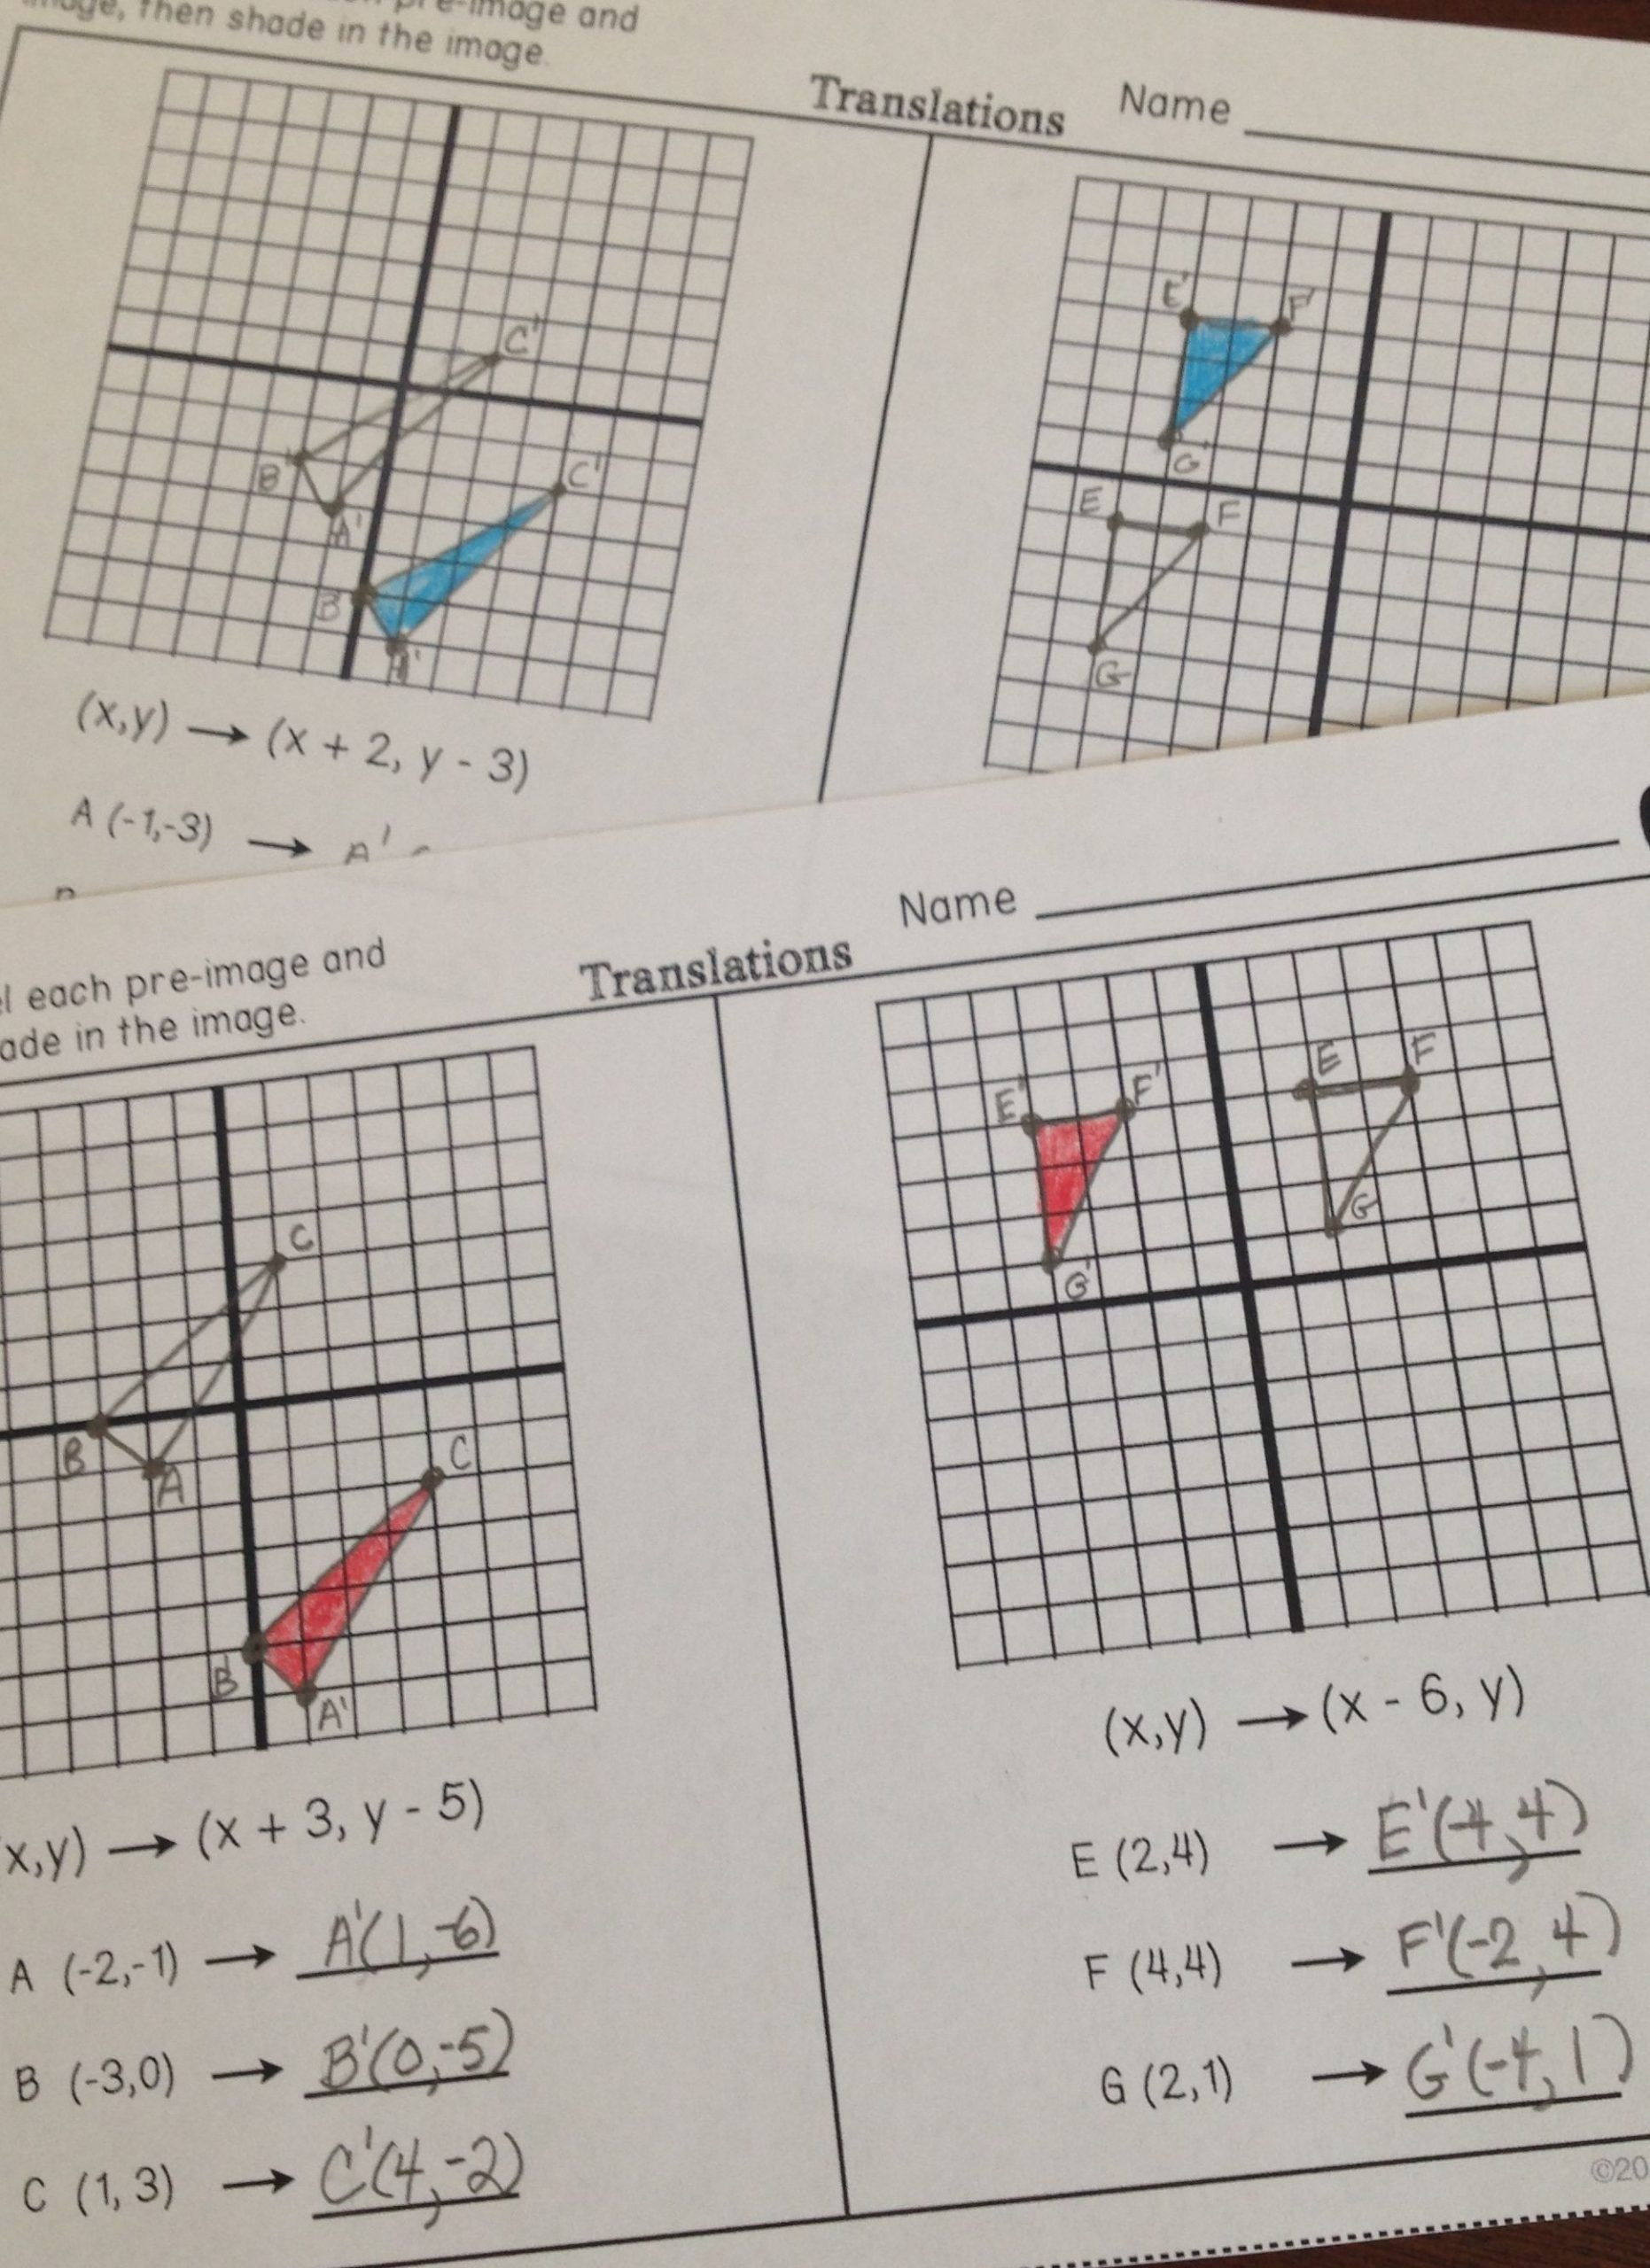 Geometry Transformations Worksheet Pdf Pin On Free Printable Math Worksheets